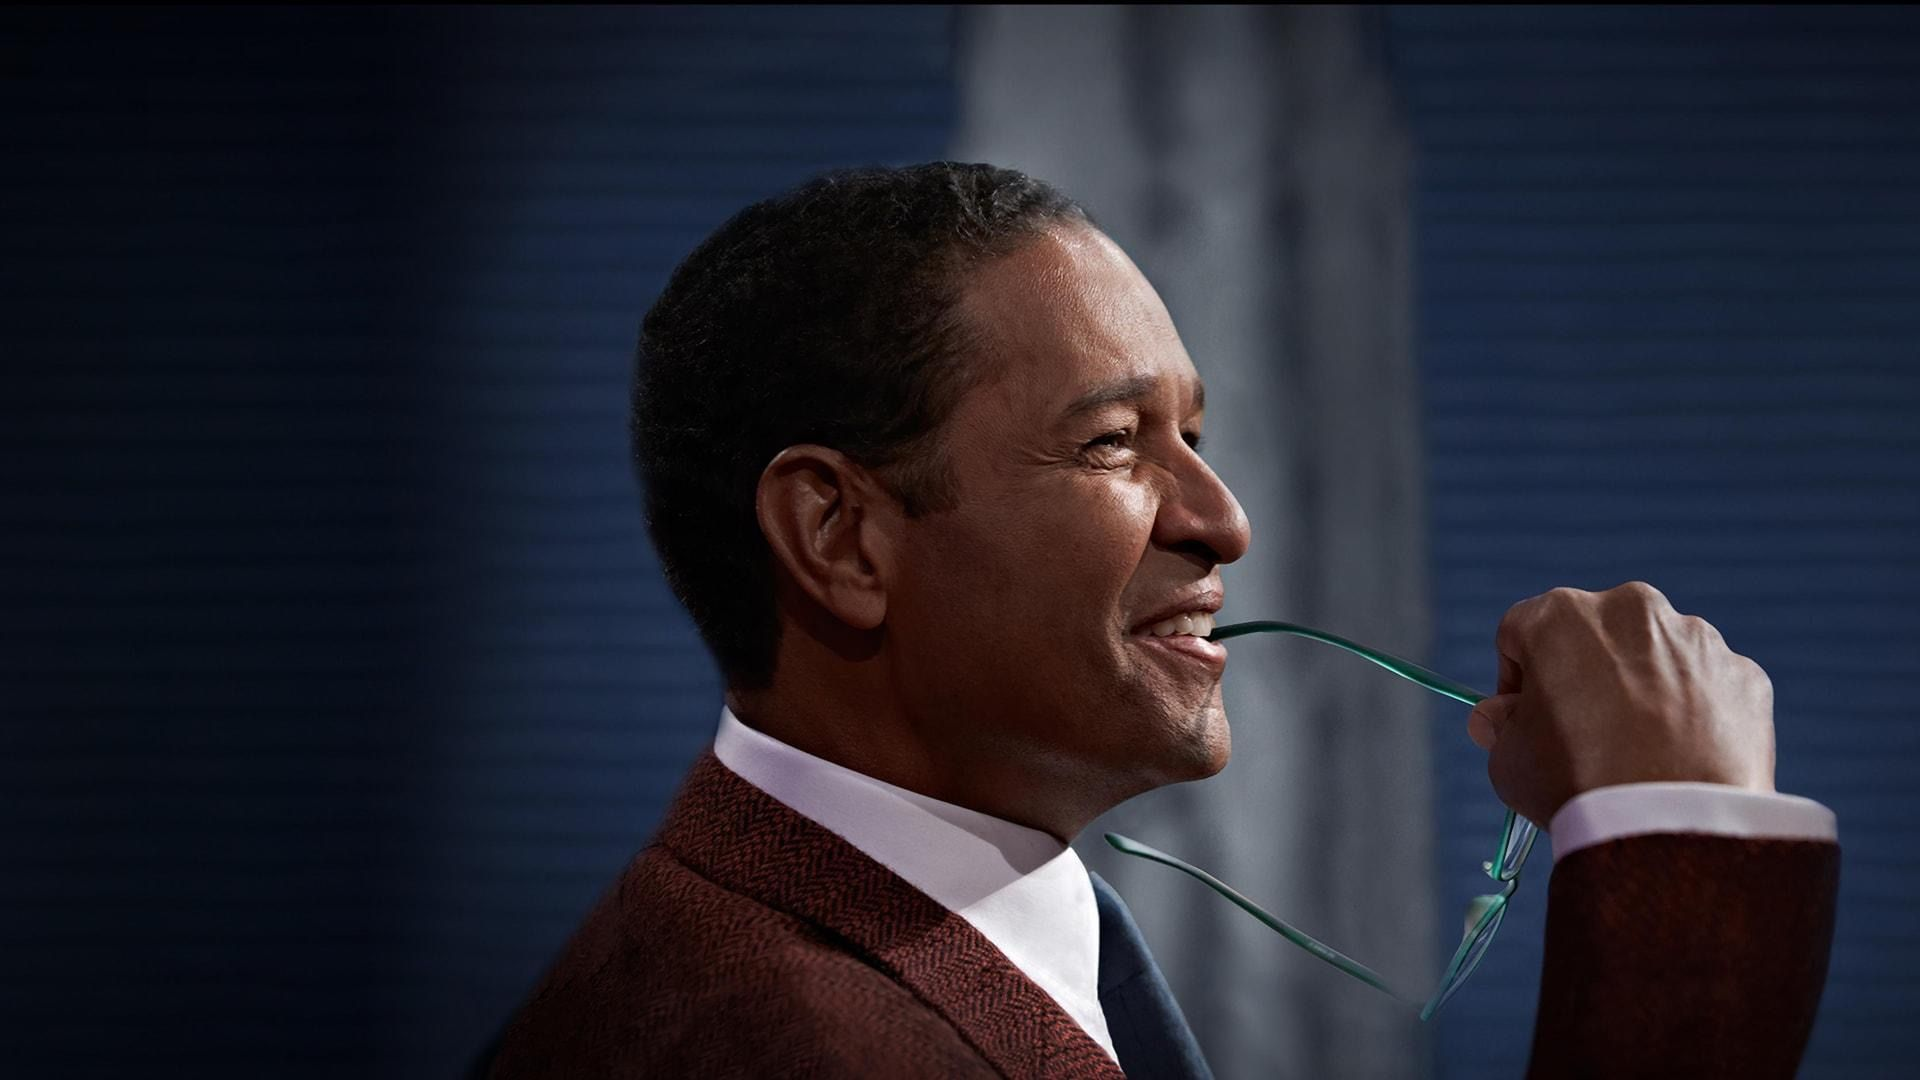 Real Sports with Bryant Gumbel - Watch Episodes on HBO or Streaming